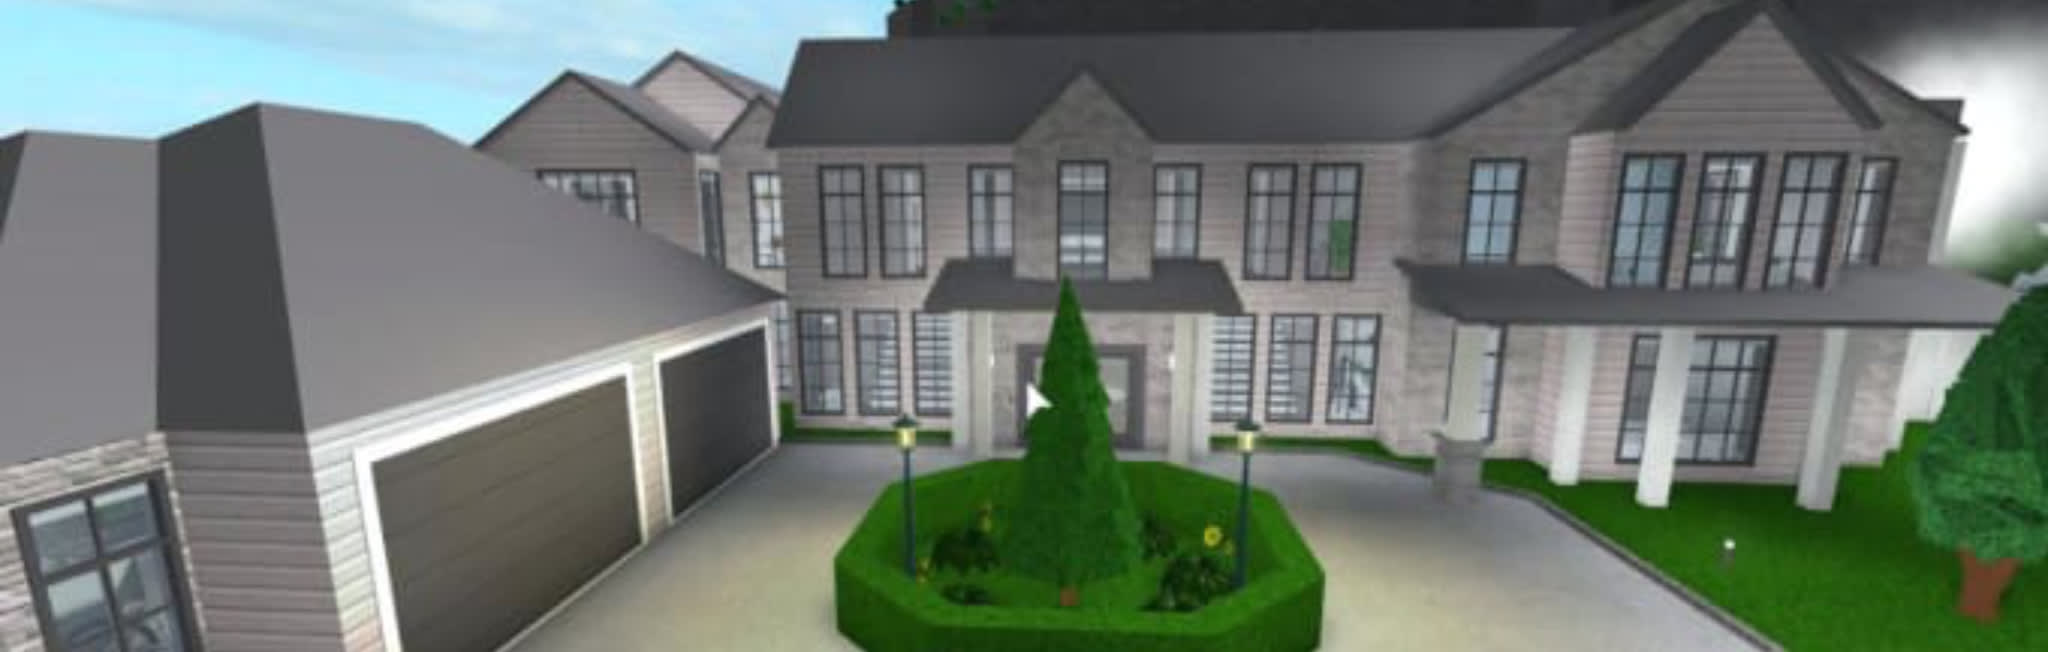 Build You An Amazing Mansion On Roblox Bloxburg By Elzapops3